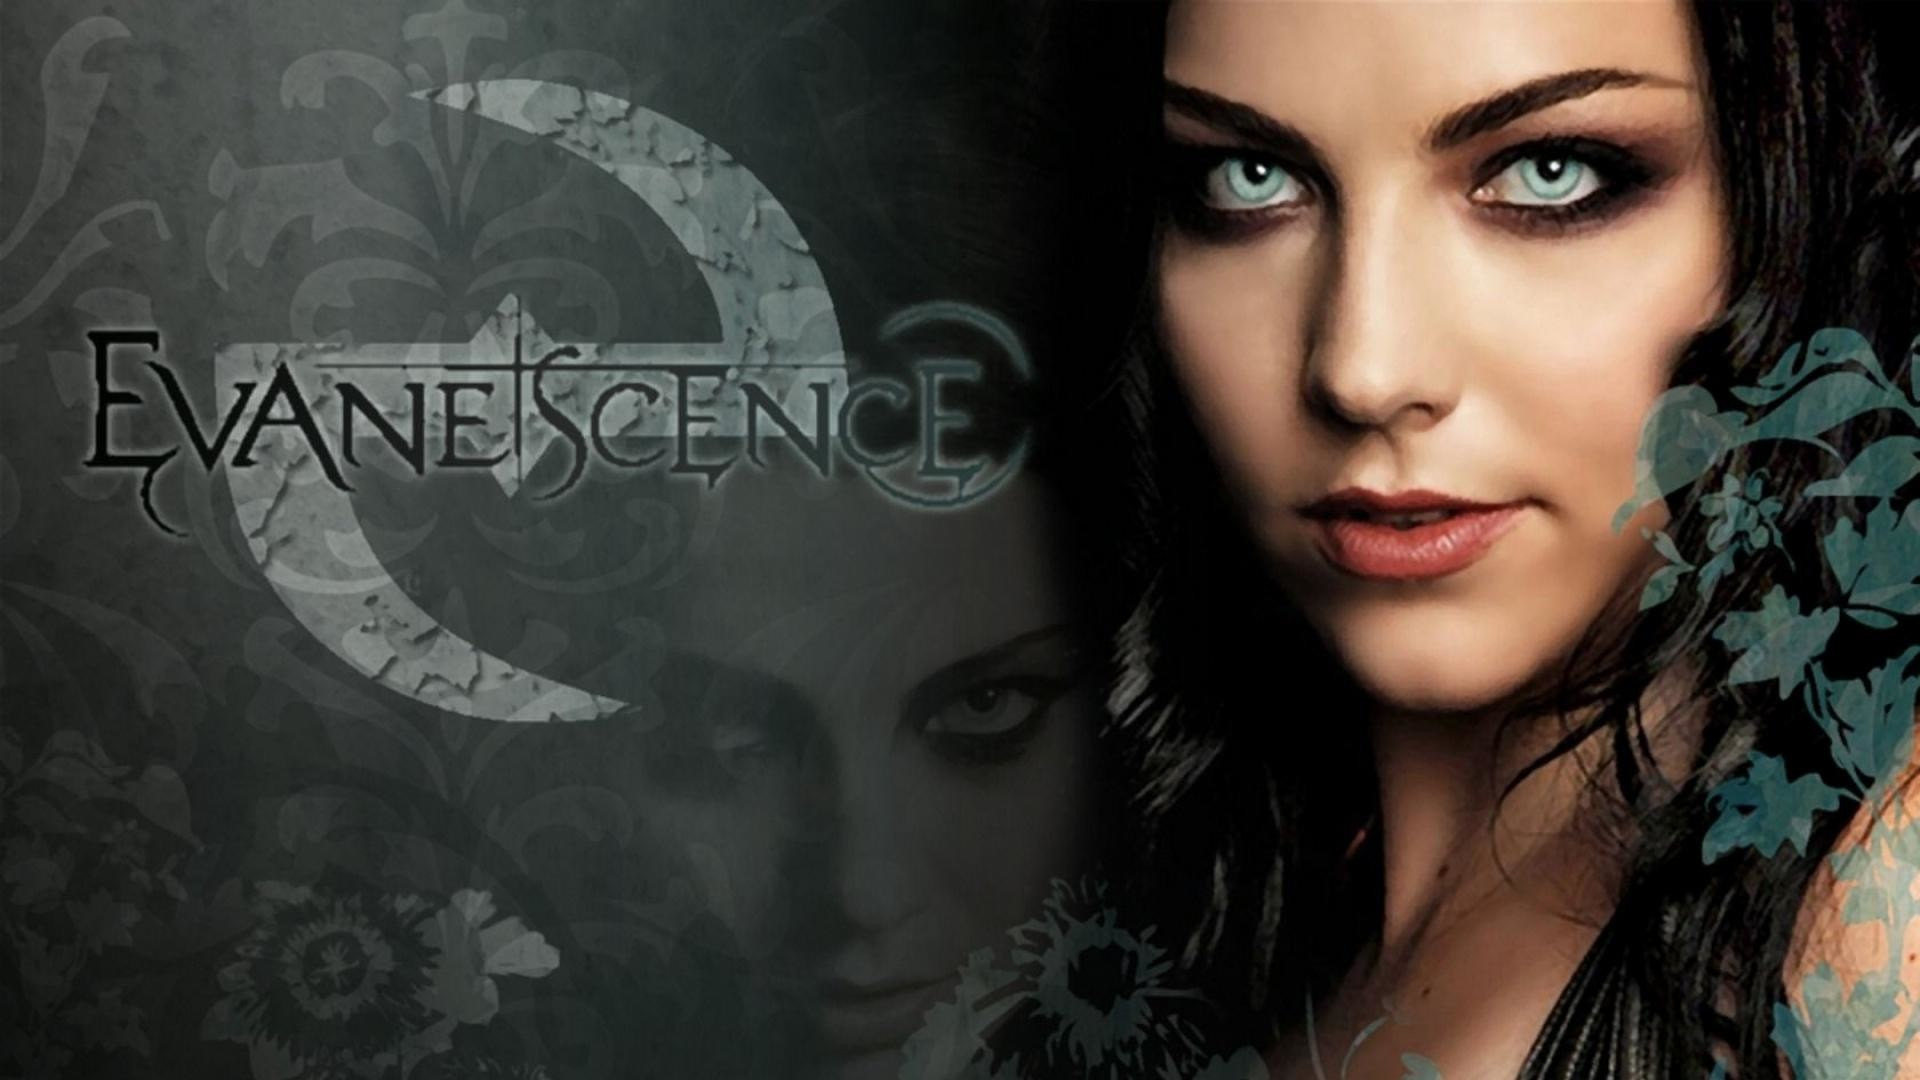 wallpaper.wiki-HD-Evanescence-Images-1920×1080-PIC-WPB006141